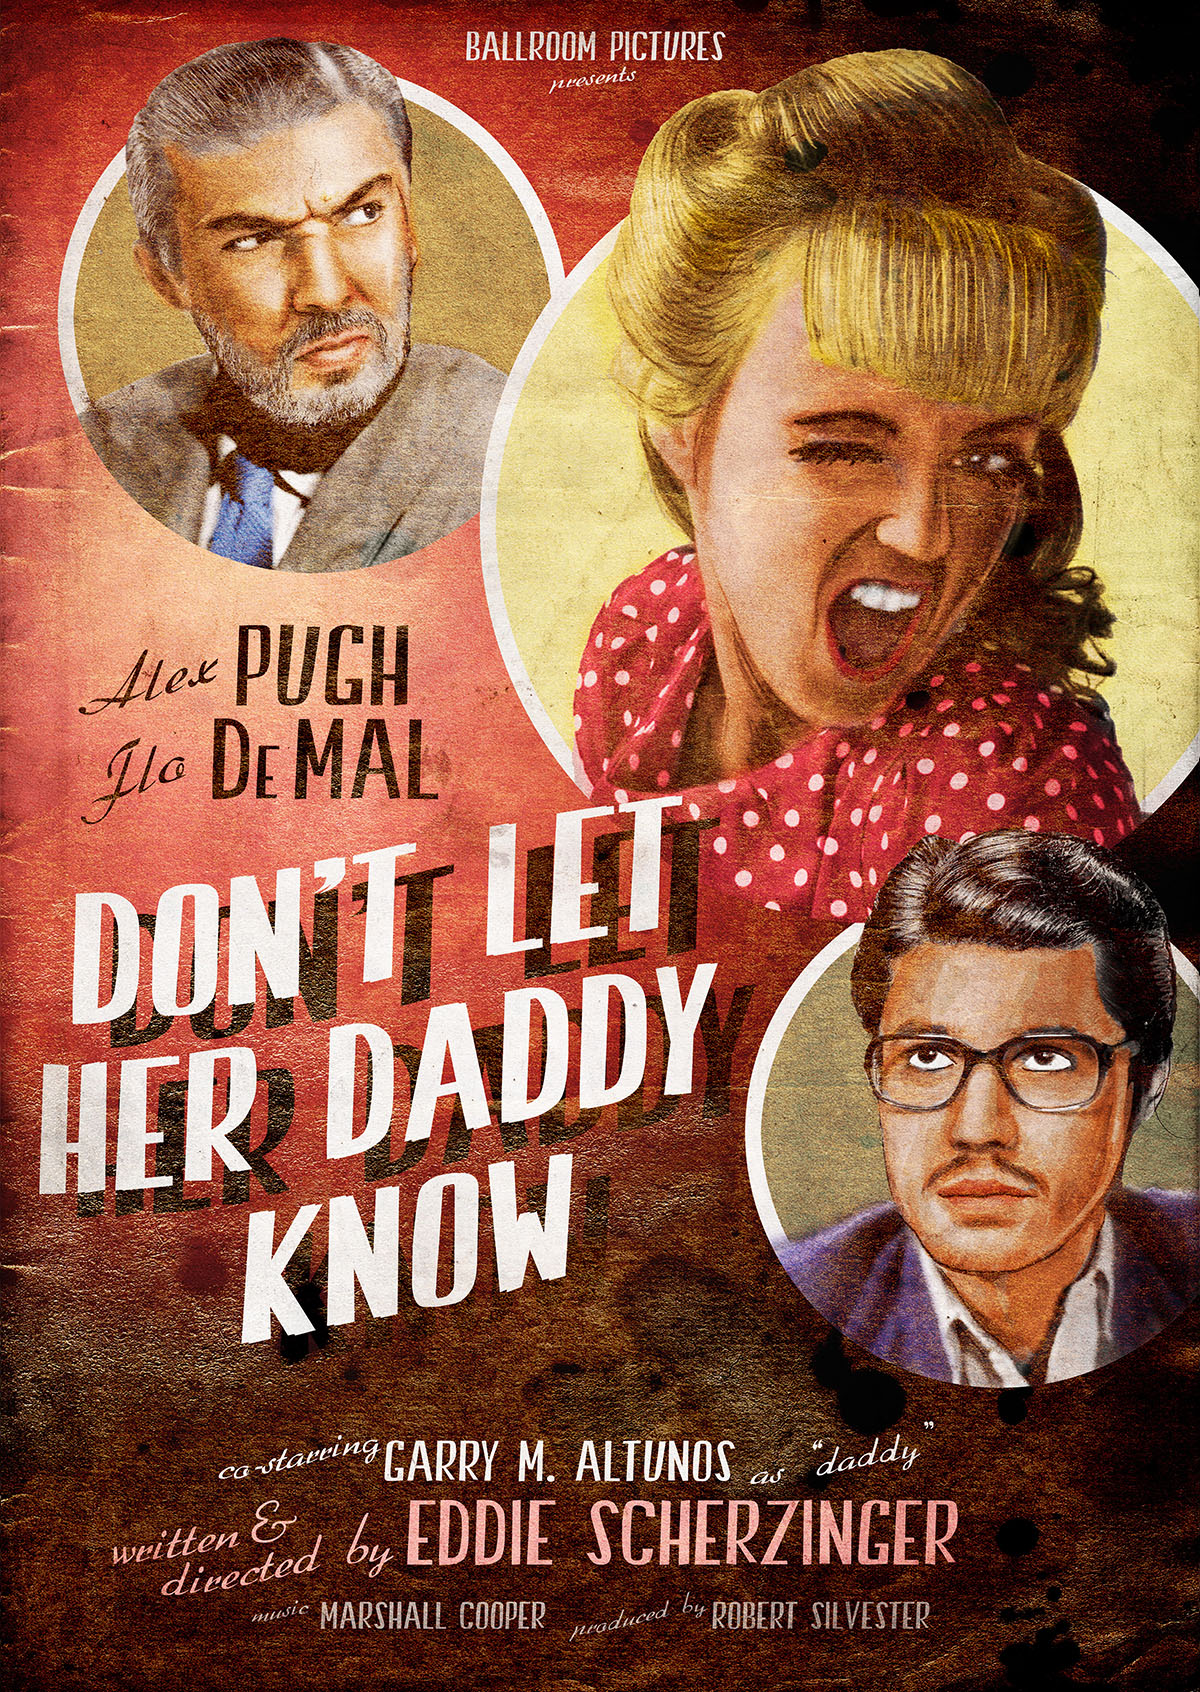 dont_let_her_daddy_know2